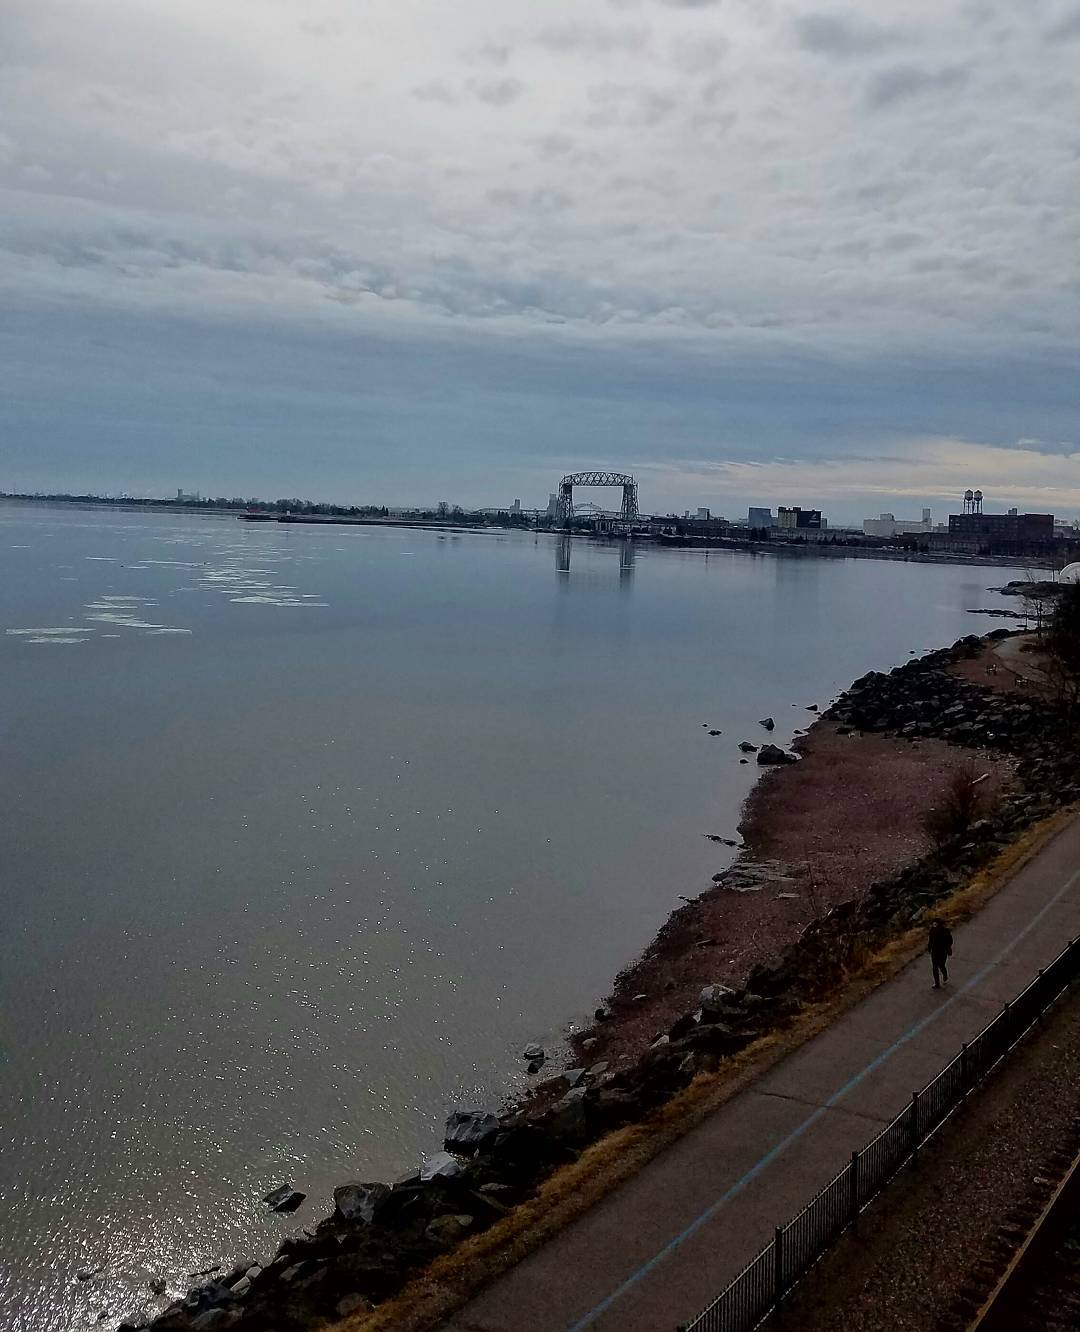 Va Bene Instagram Photo: @vabenecaffe Also, love days where it's so calm the lift bridge reflects perfectly in the water. #lakesuperior #lakewalk #duluth #duluthloveslocal #liftbridge